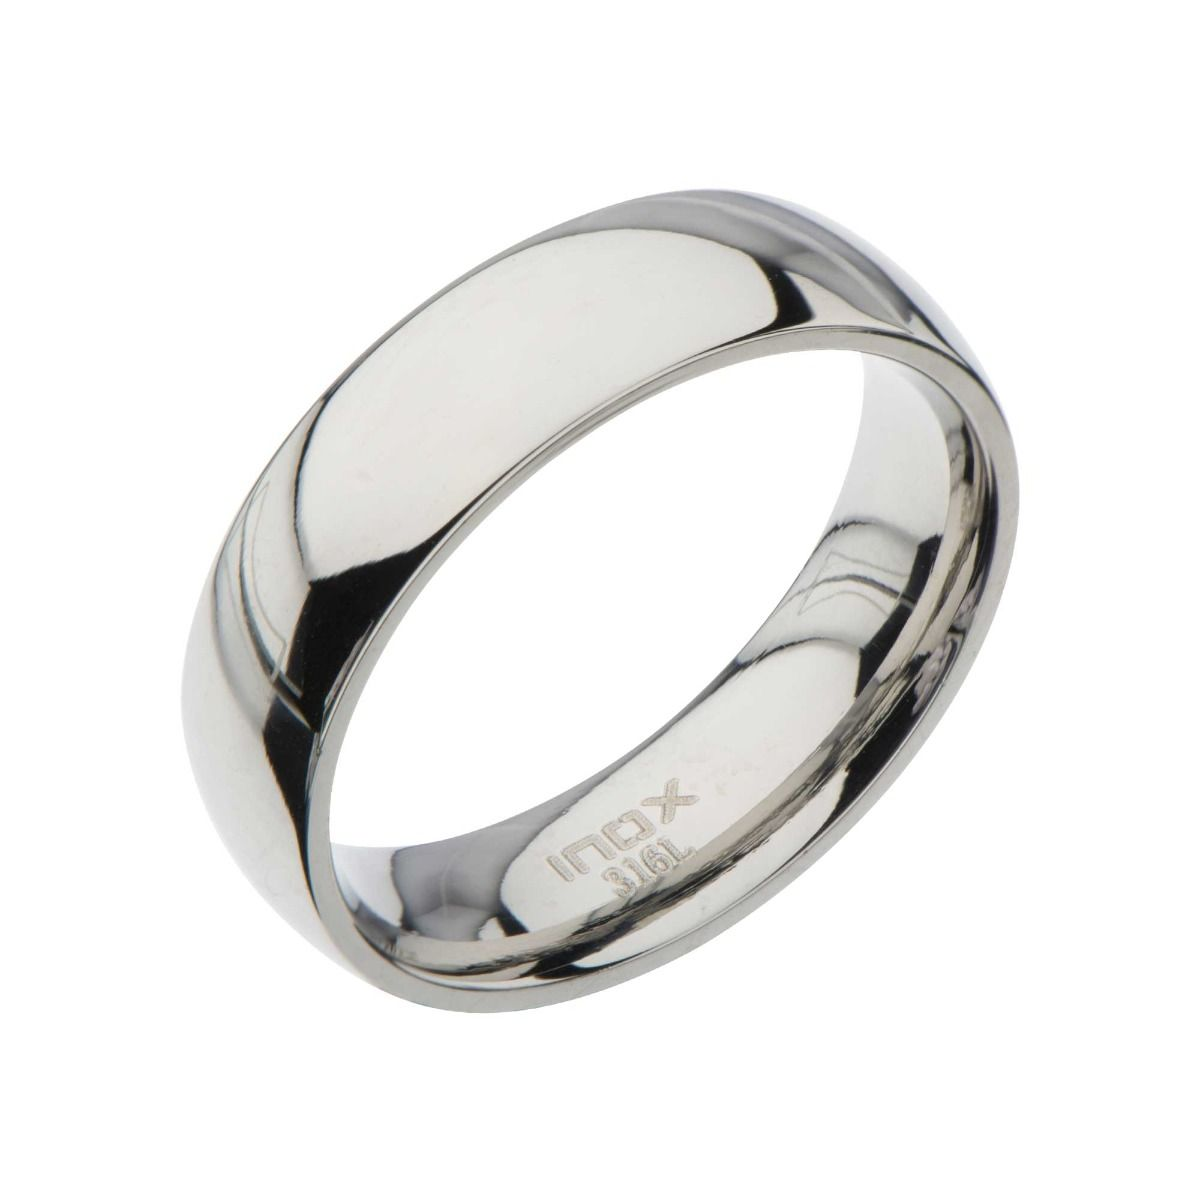 Steel Art Men's Stainless Steel 6mm Classic Wedding Band with High-Polish Finish